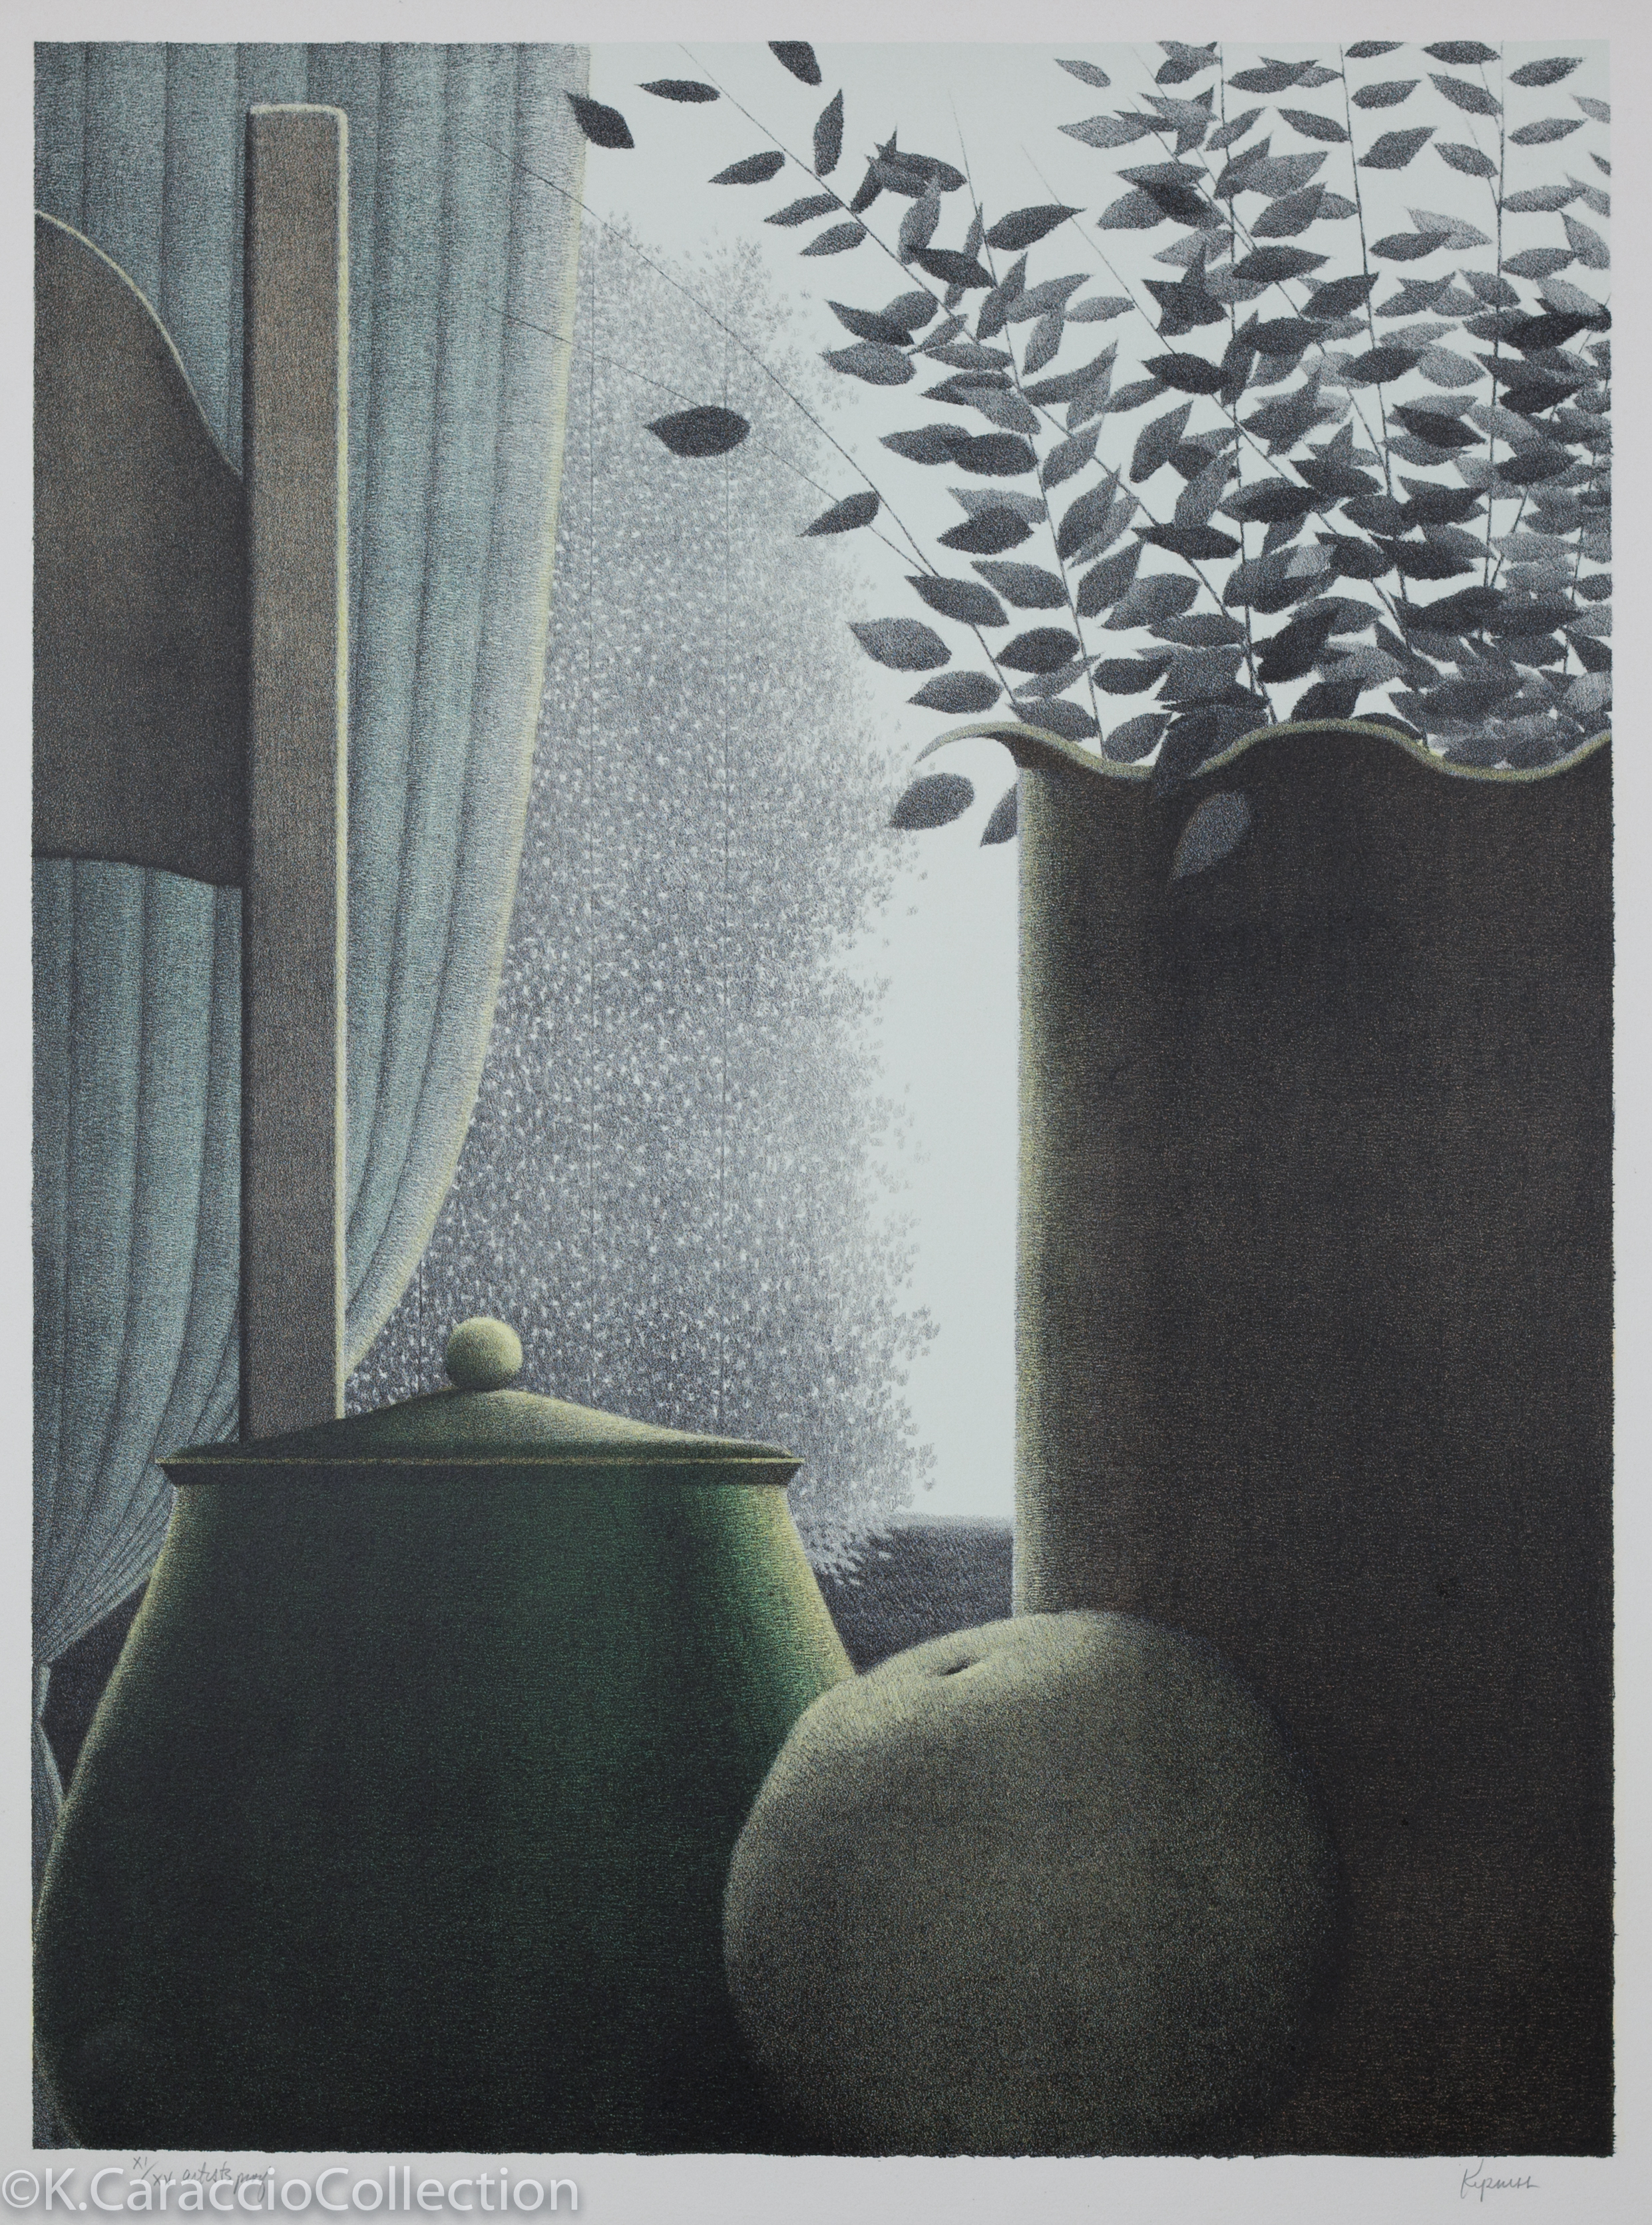 Curtain and Leaves, 1978